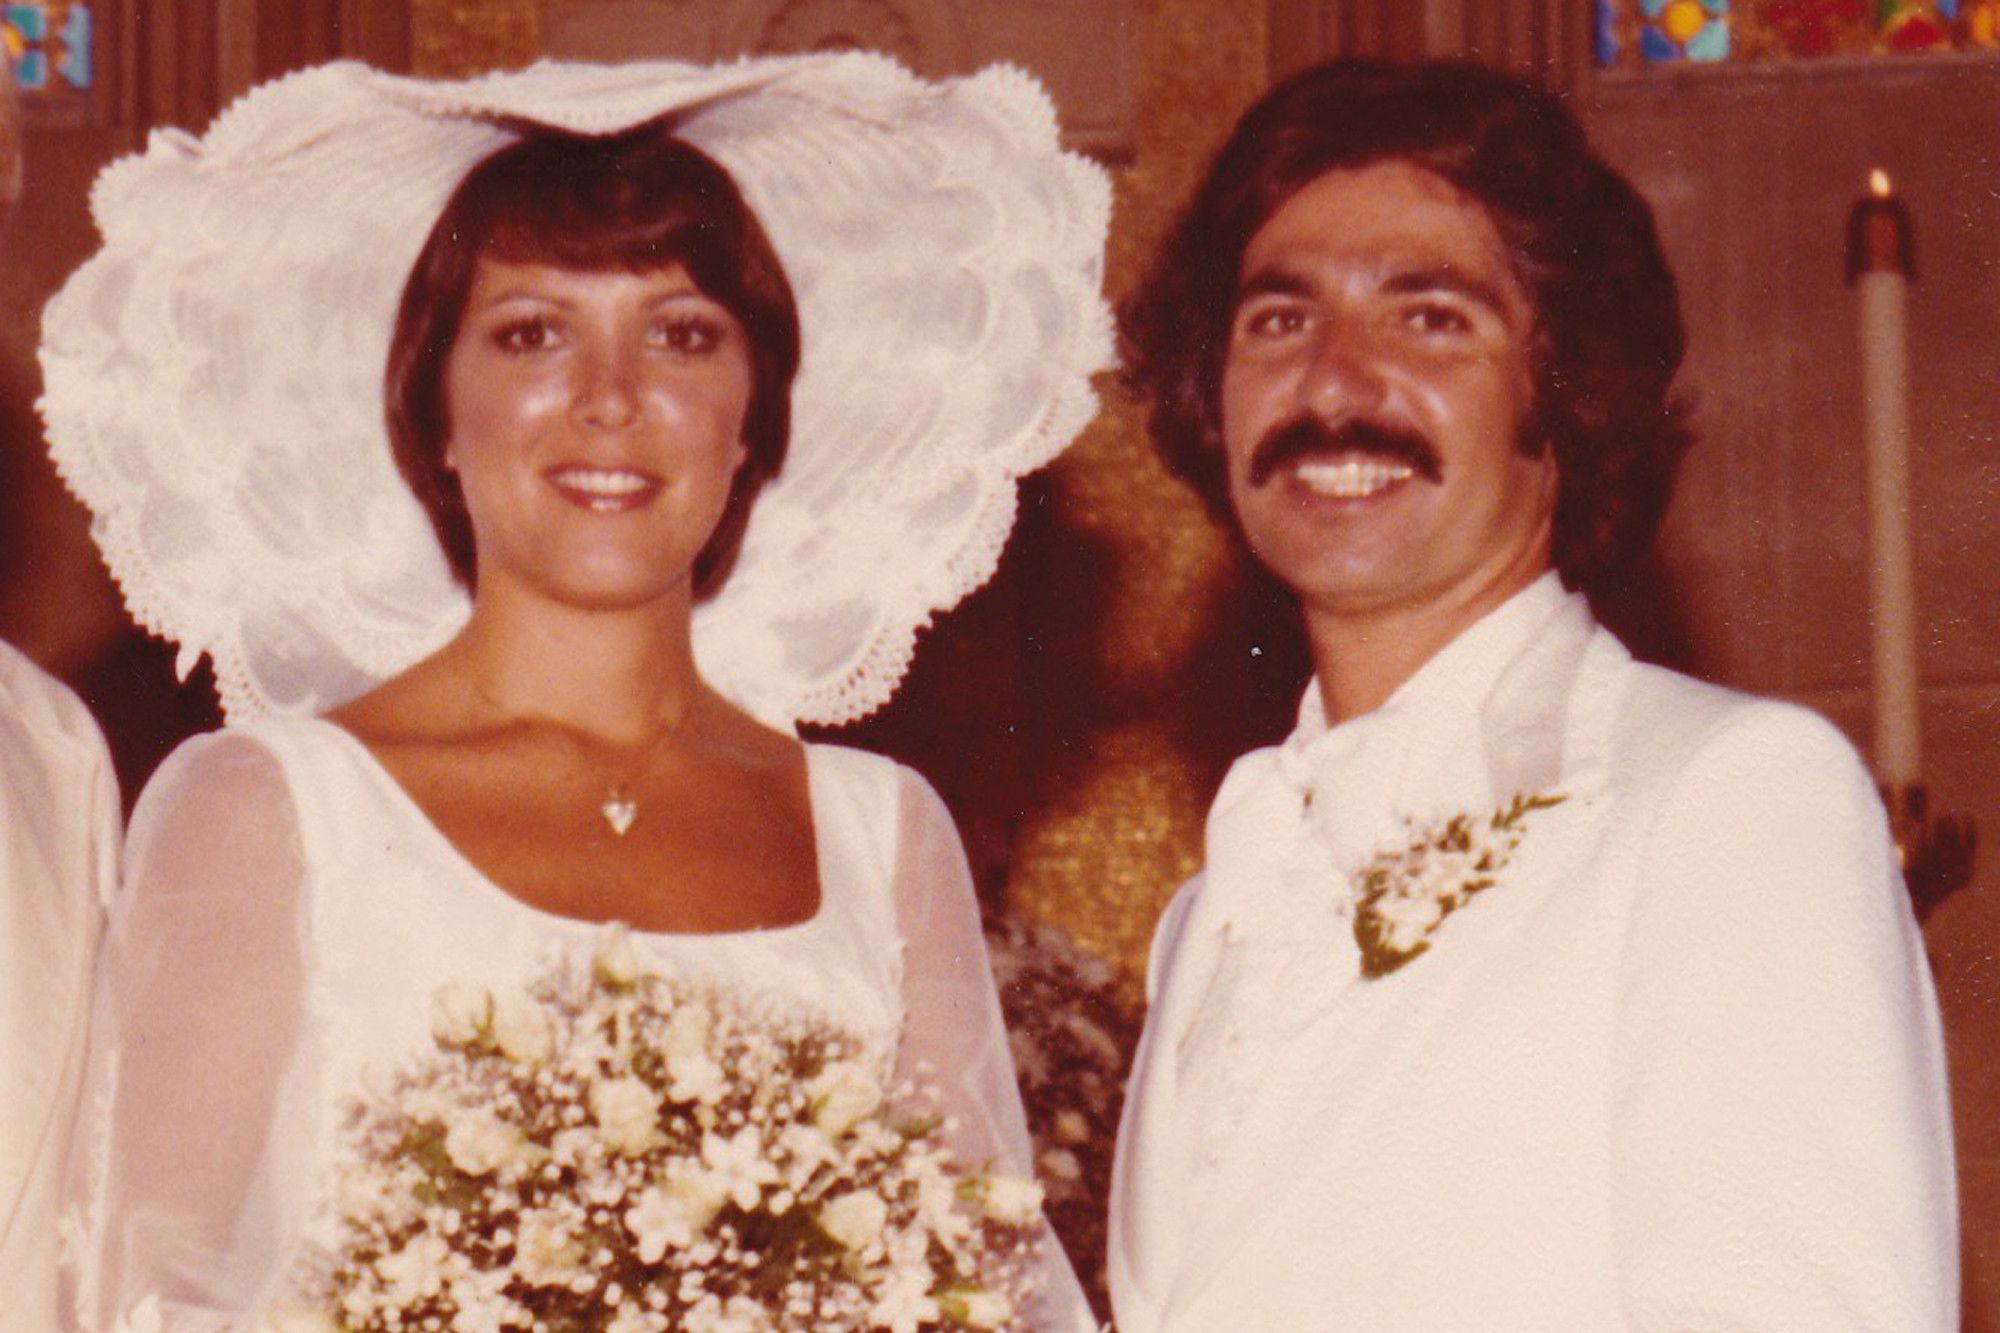 Kris Jenner and Robert Kardashian Sr. on their wedding day